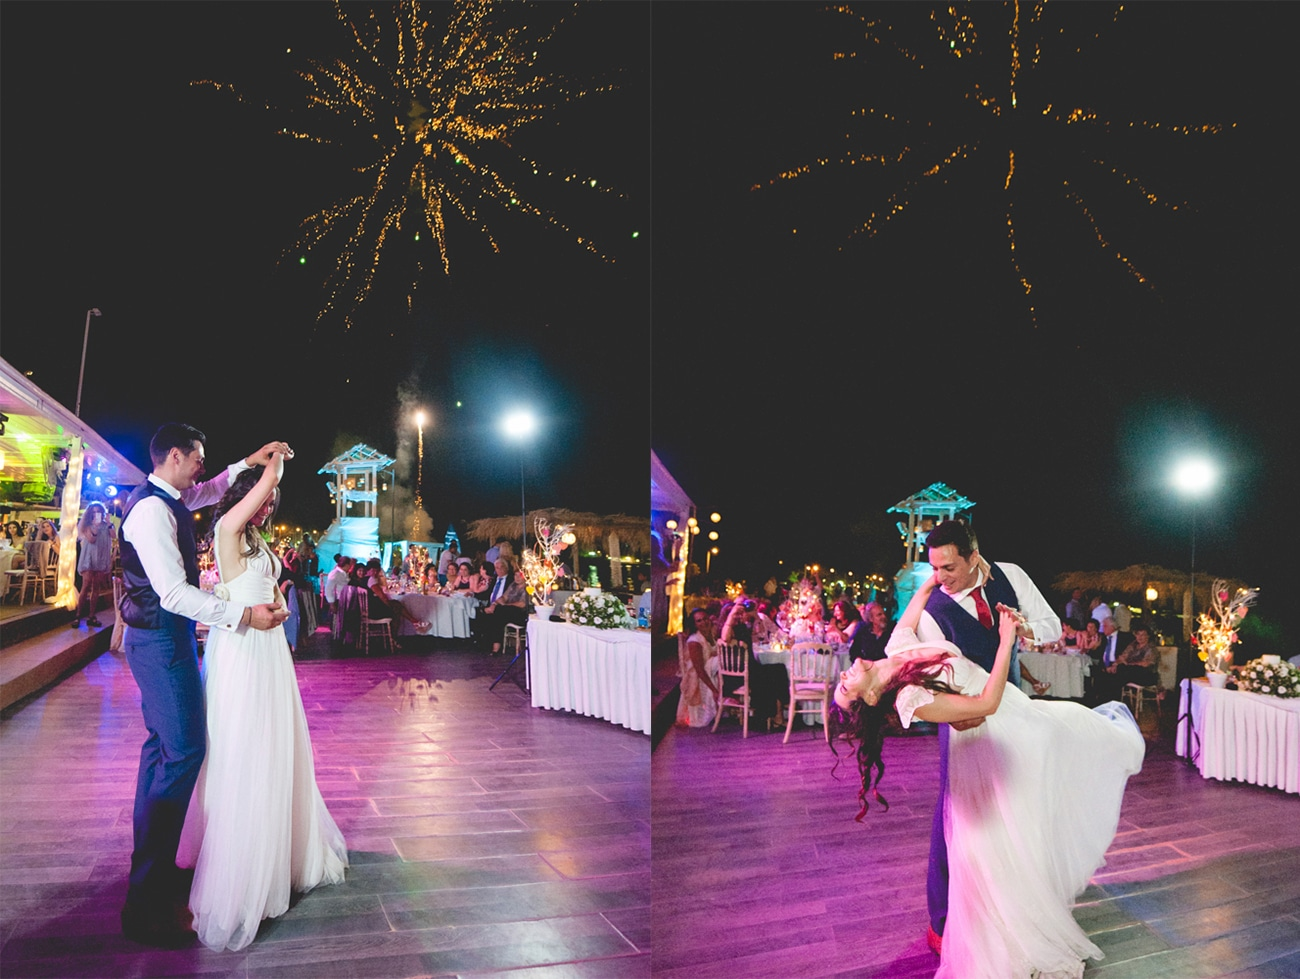 Beach party wedding